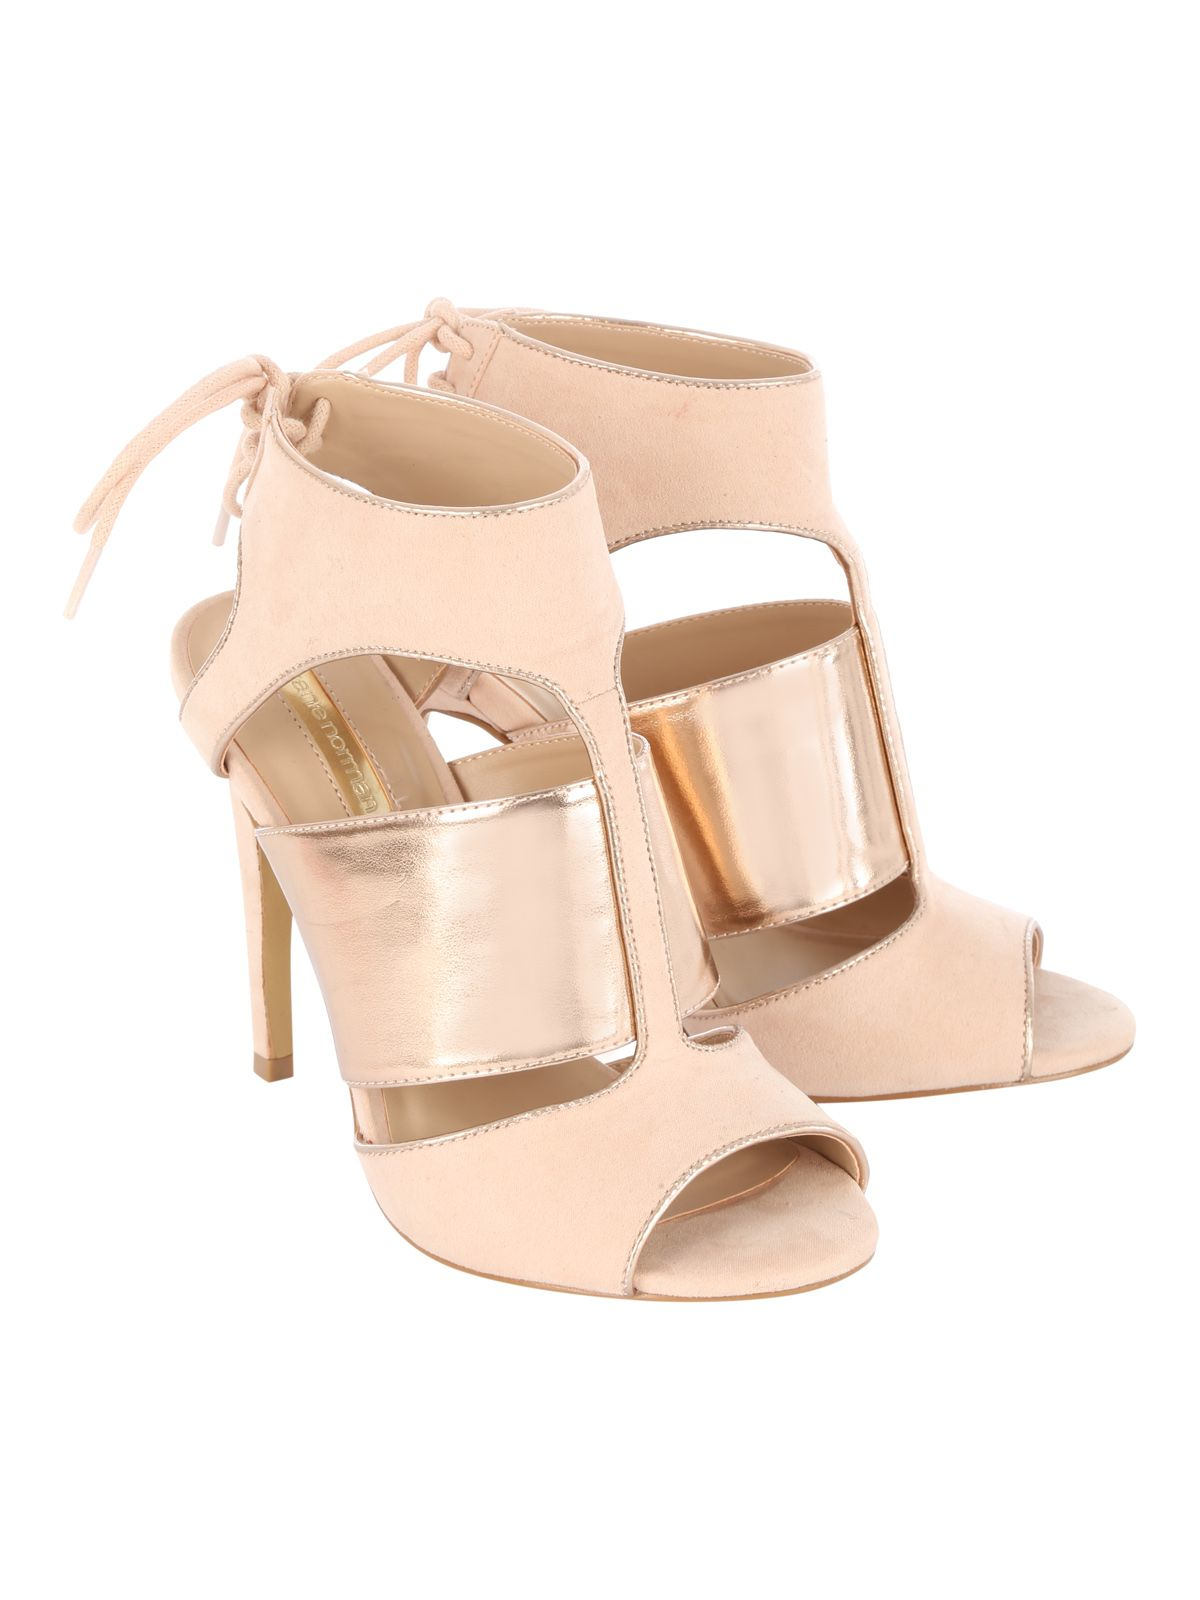 Jane Norman Lace Up Rose Gold Cage Heels In Natural Lyst